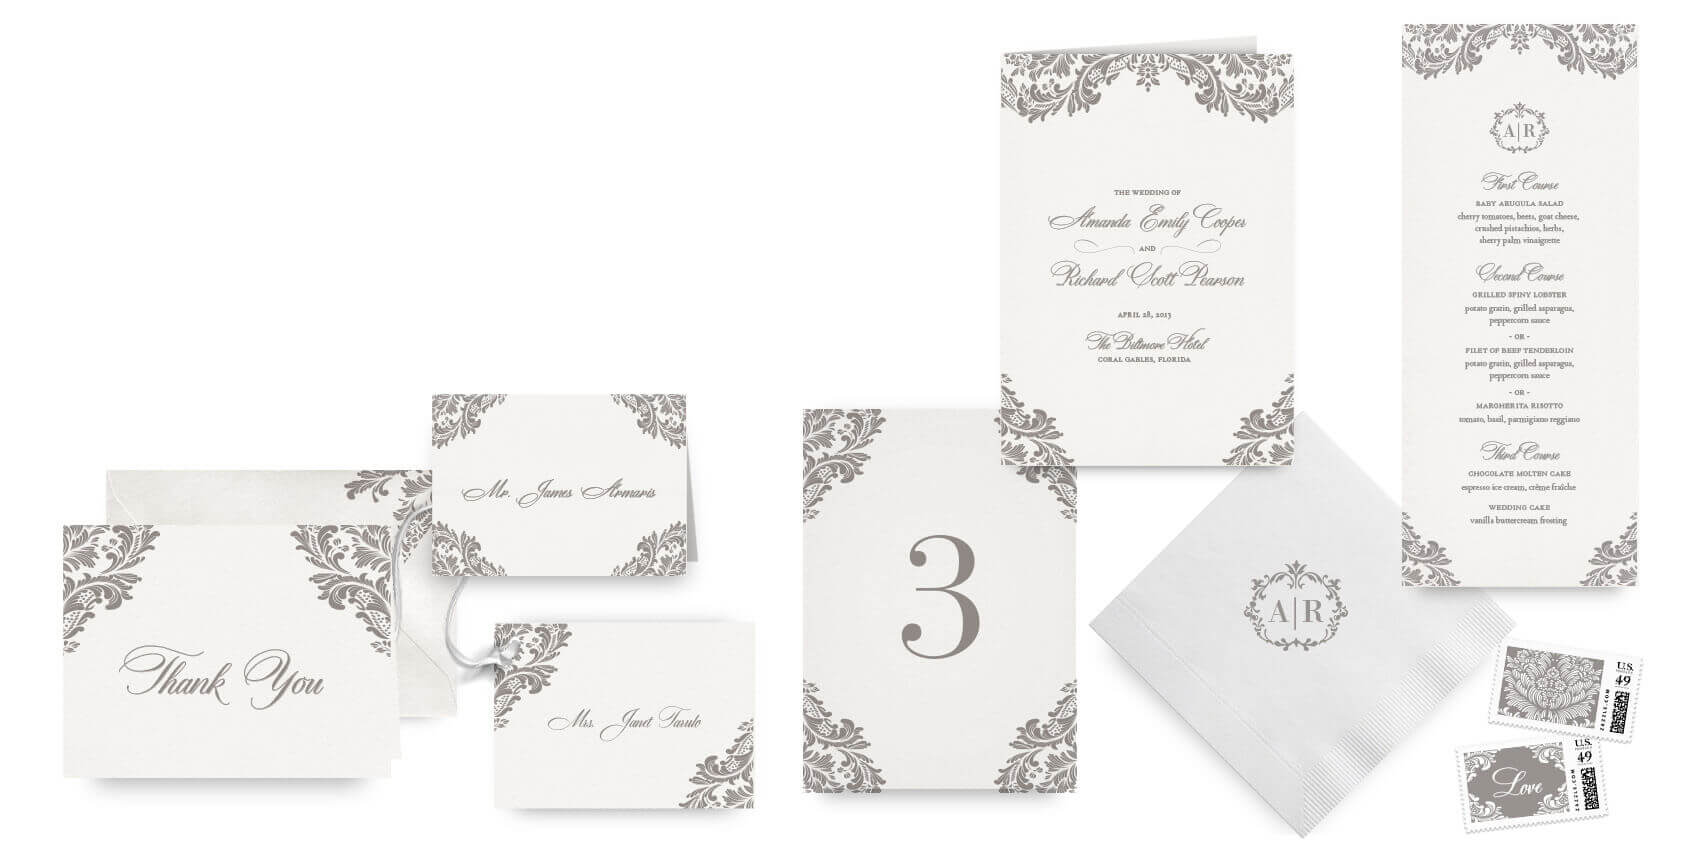 Classic ornate menus, programs and wedding accessories